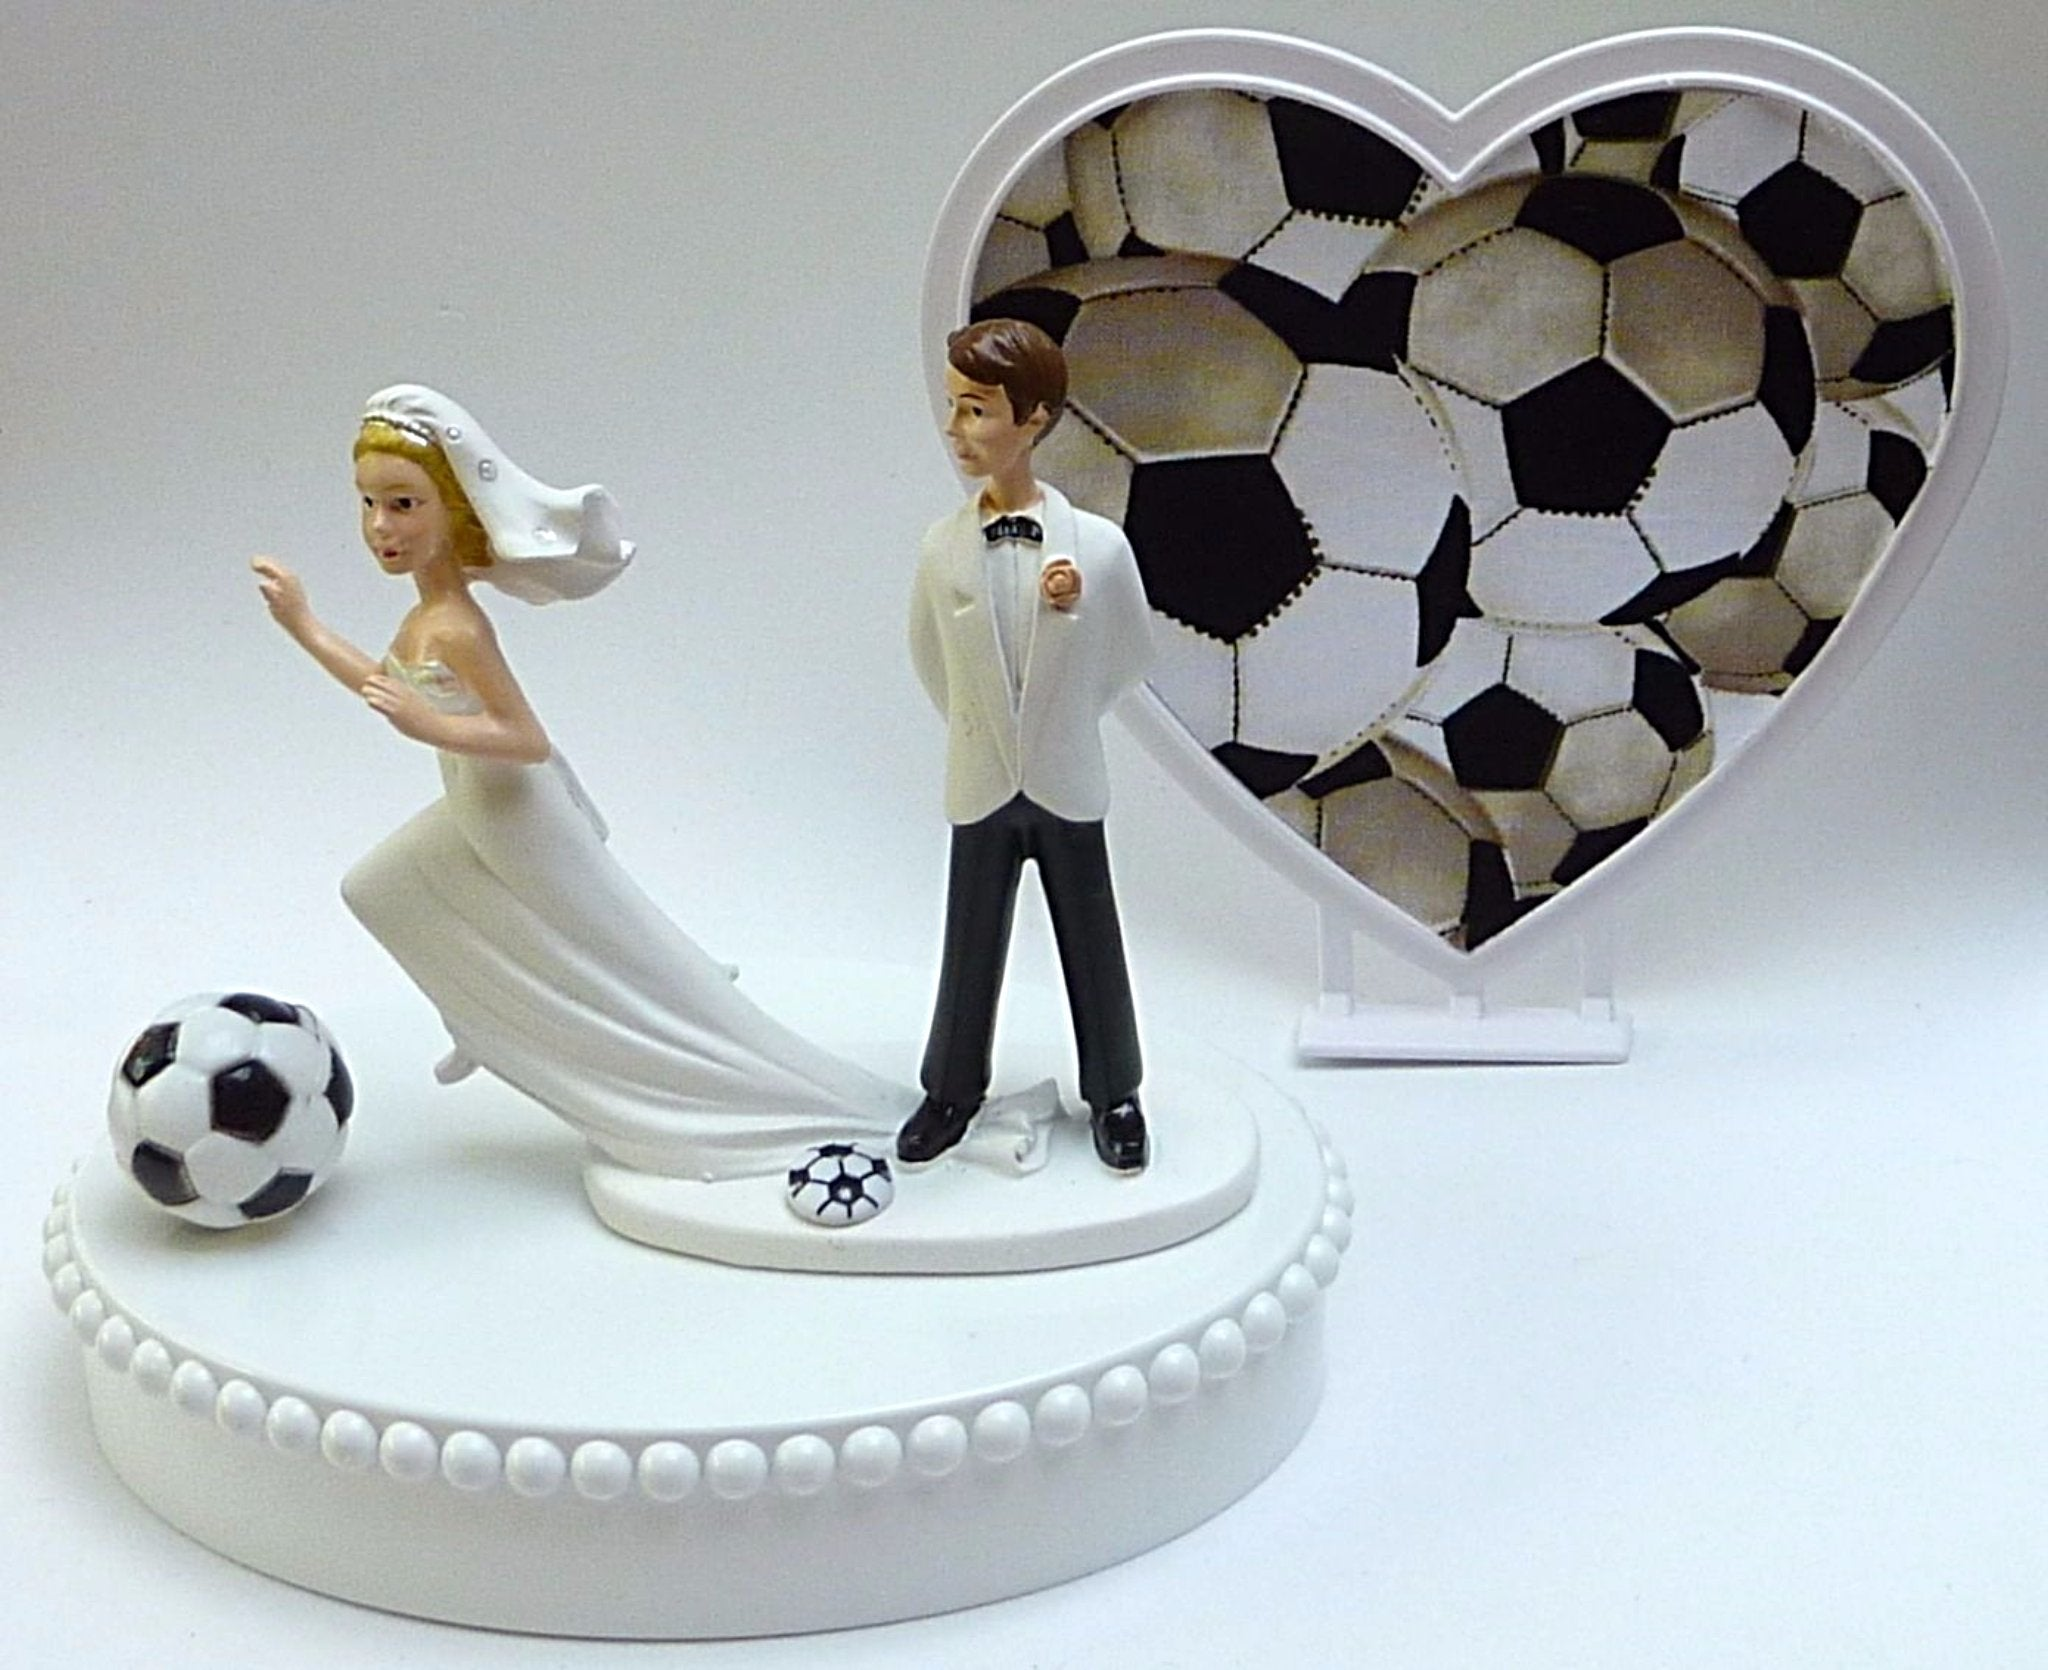 Fun Wedding Things soccer cake topper wedding bride and groom humorous funny cake top